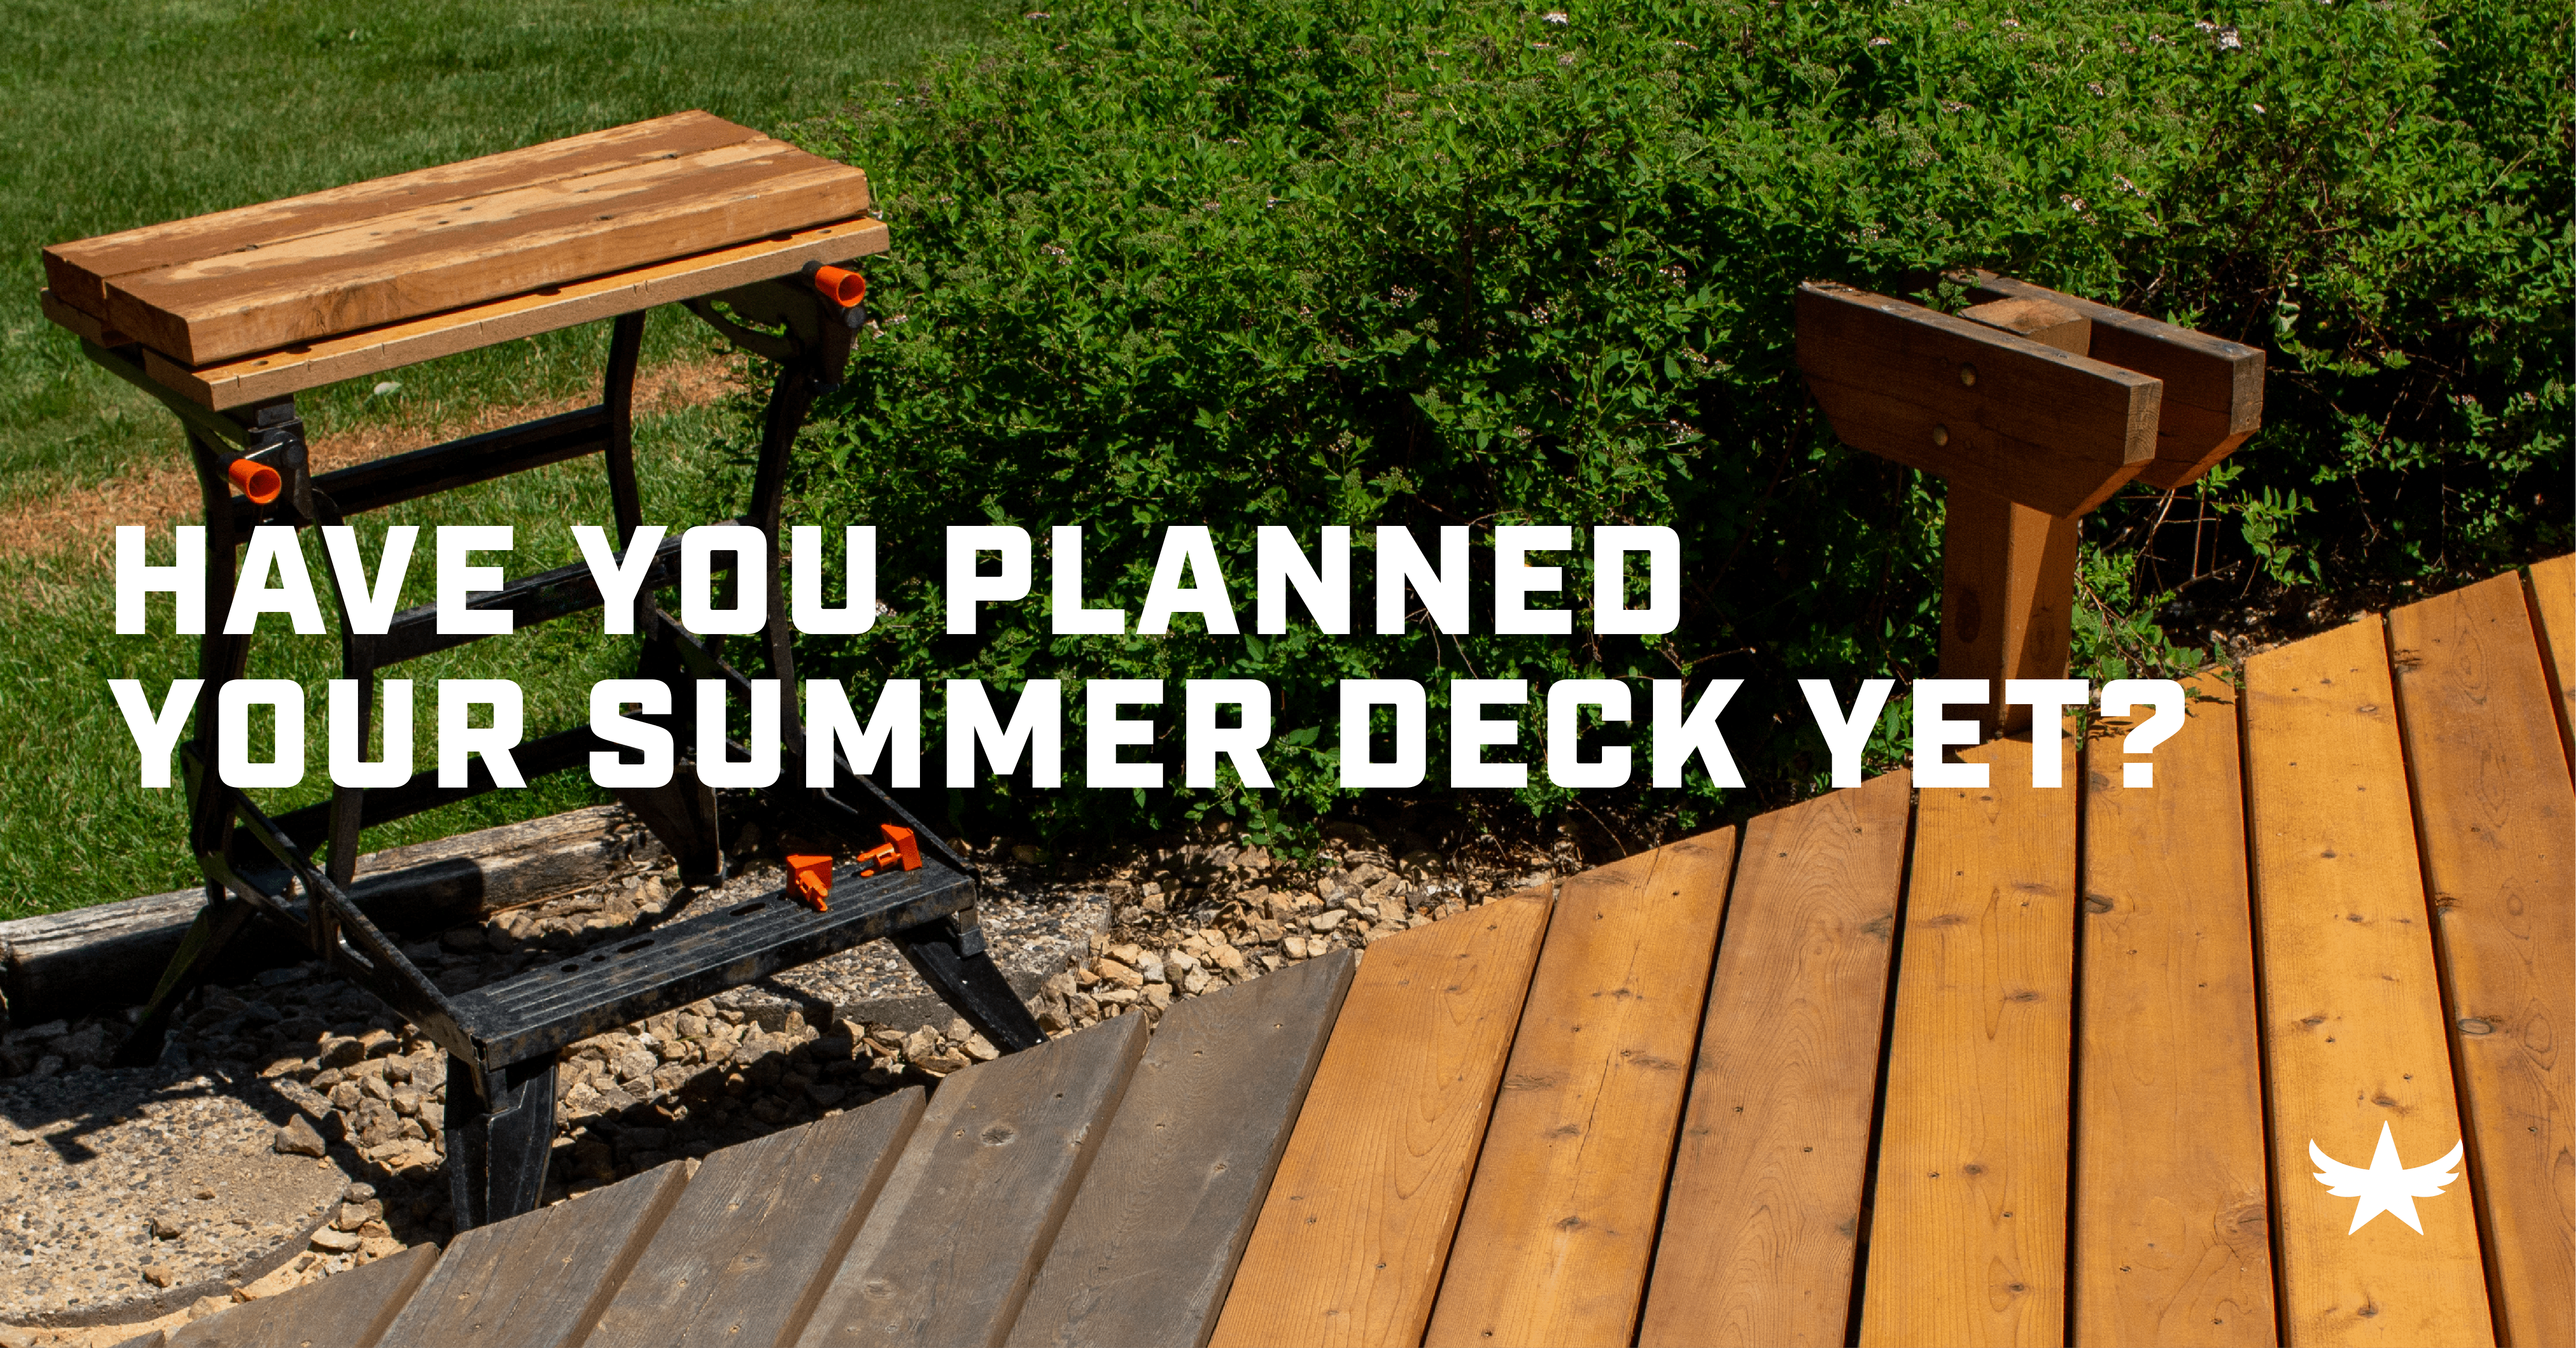 Have you planned your summer deck yet?